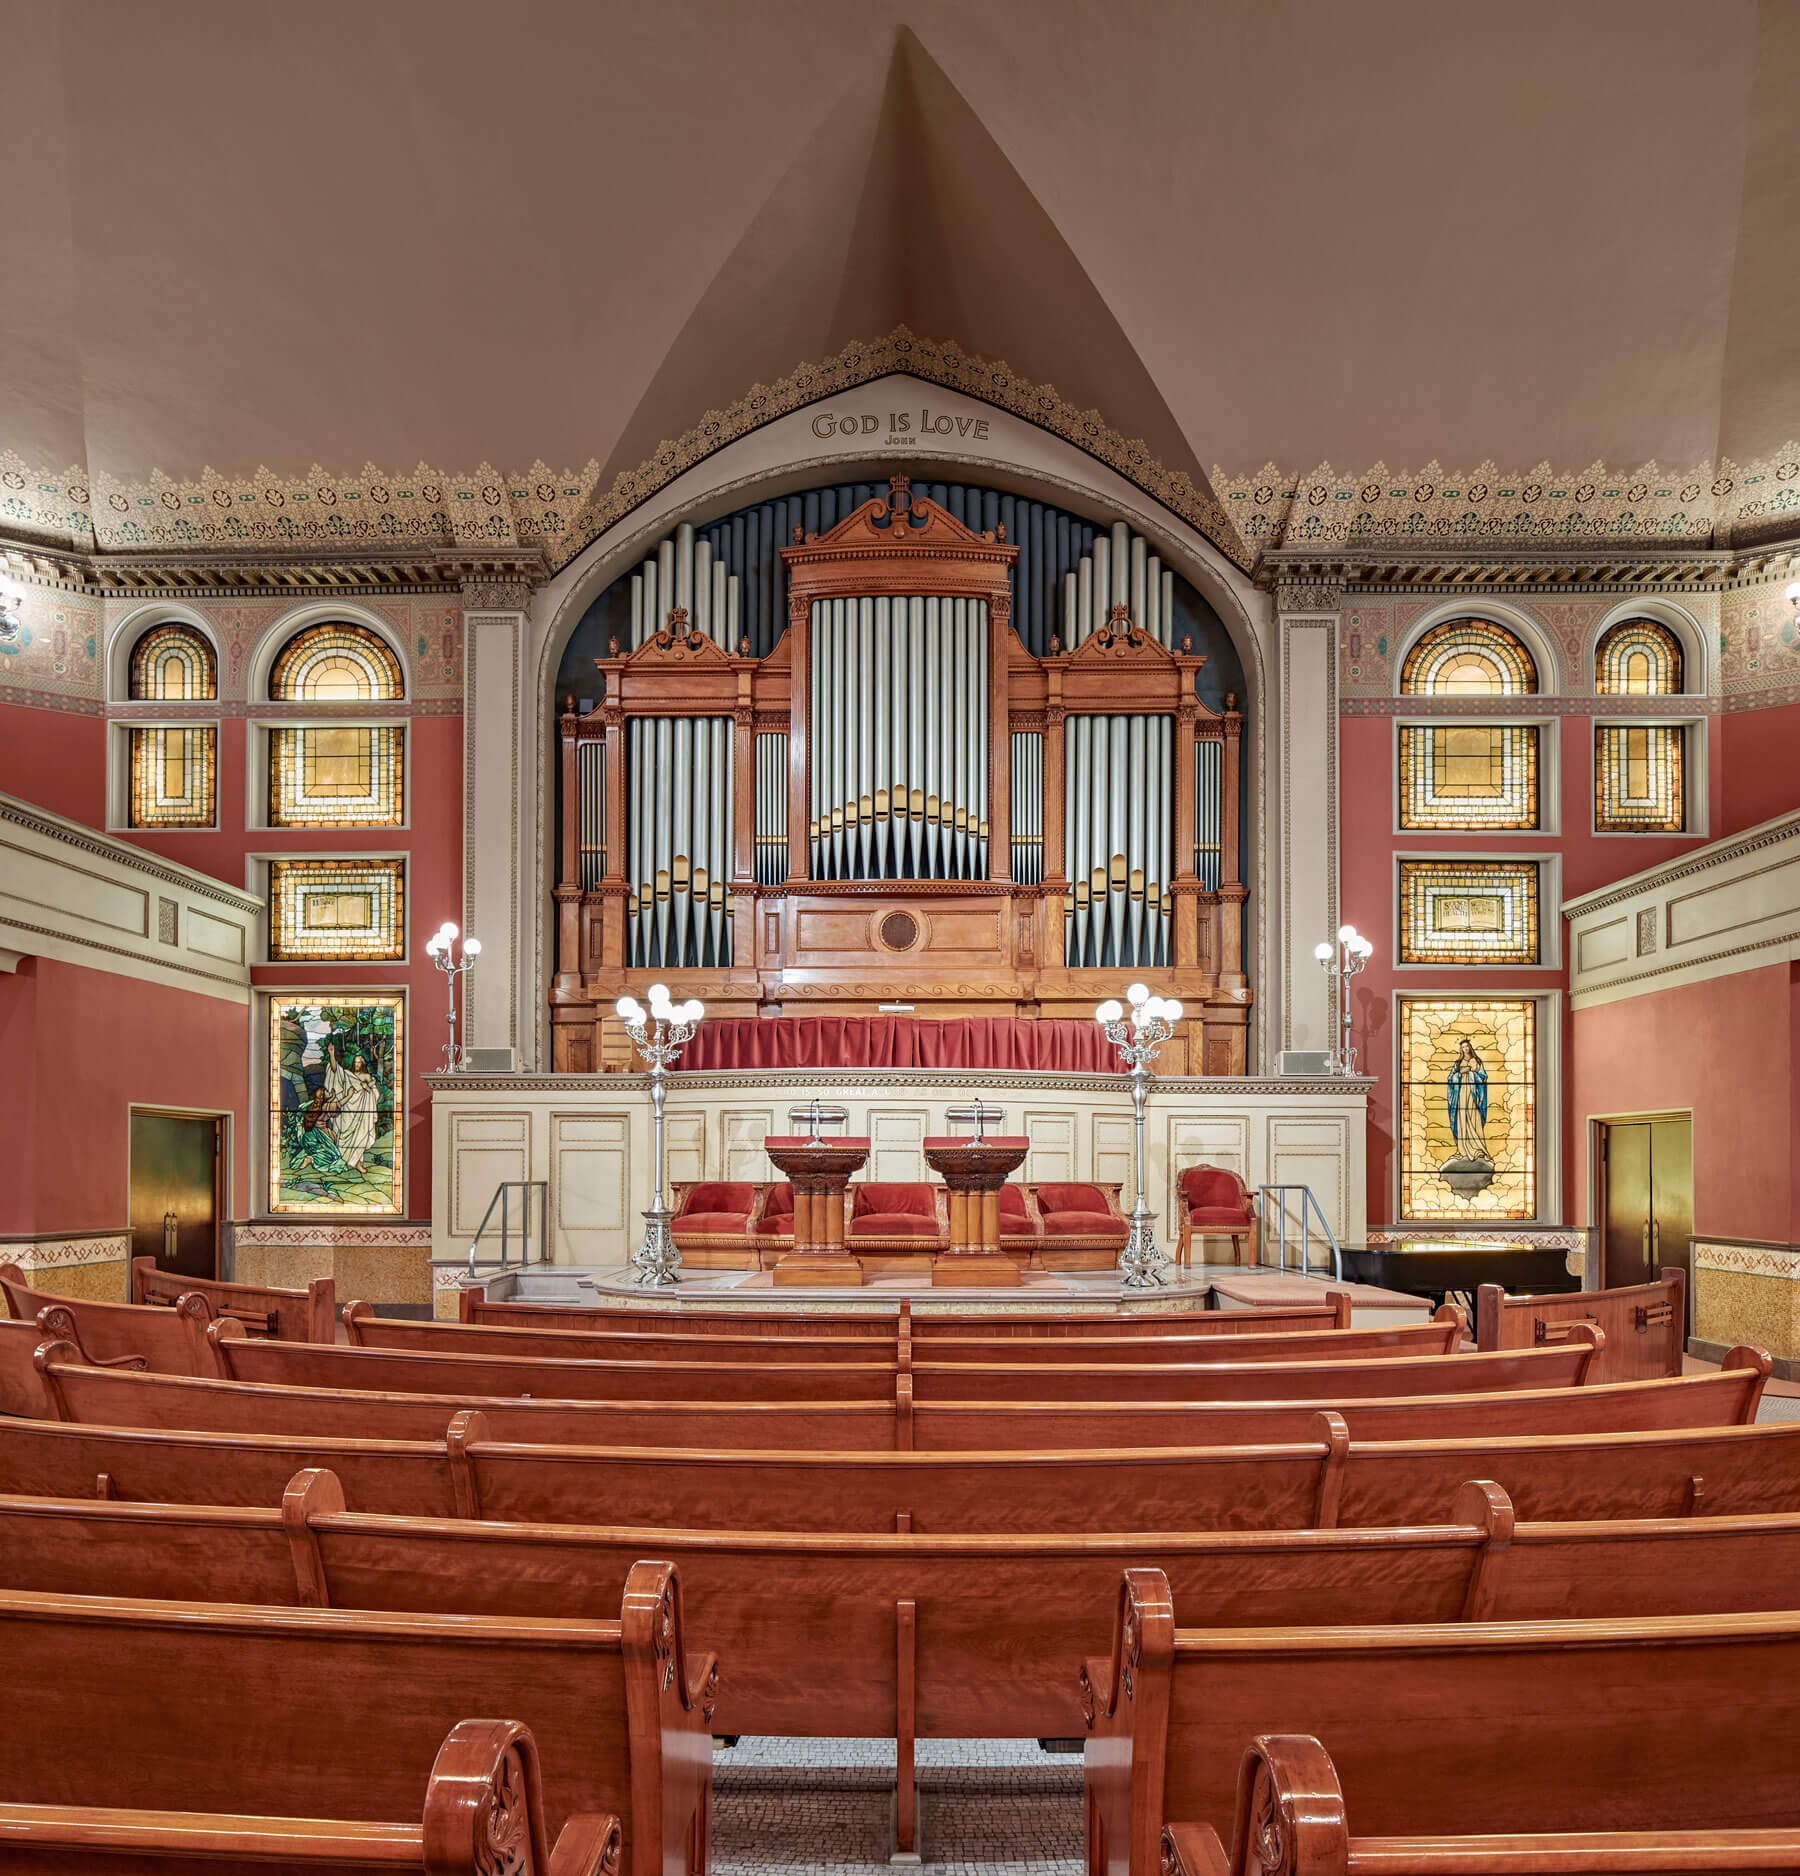 Straight-on view of the organ and altar of The First Church of Christ, Scientist, The Mother Church Original.